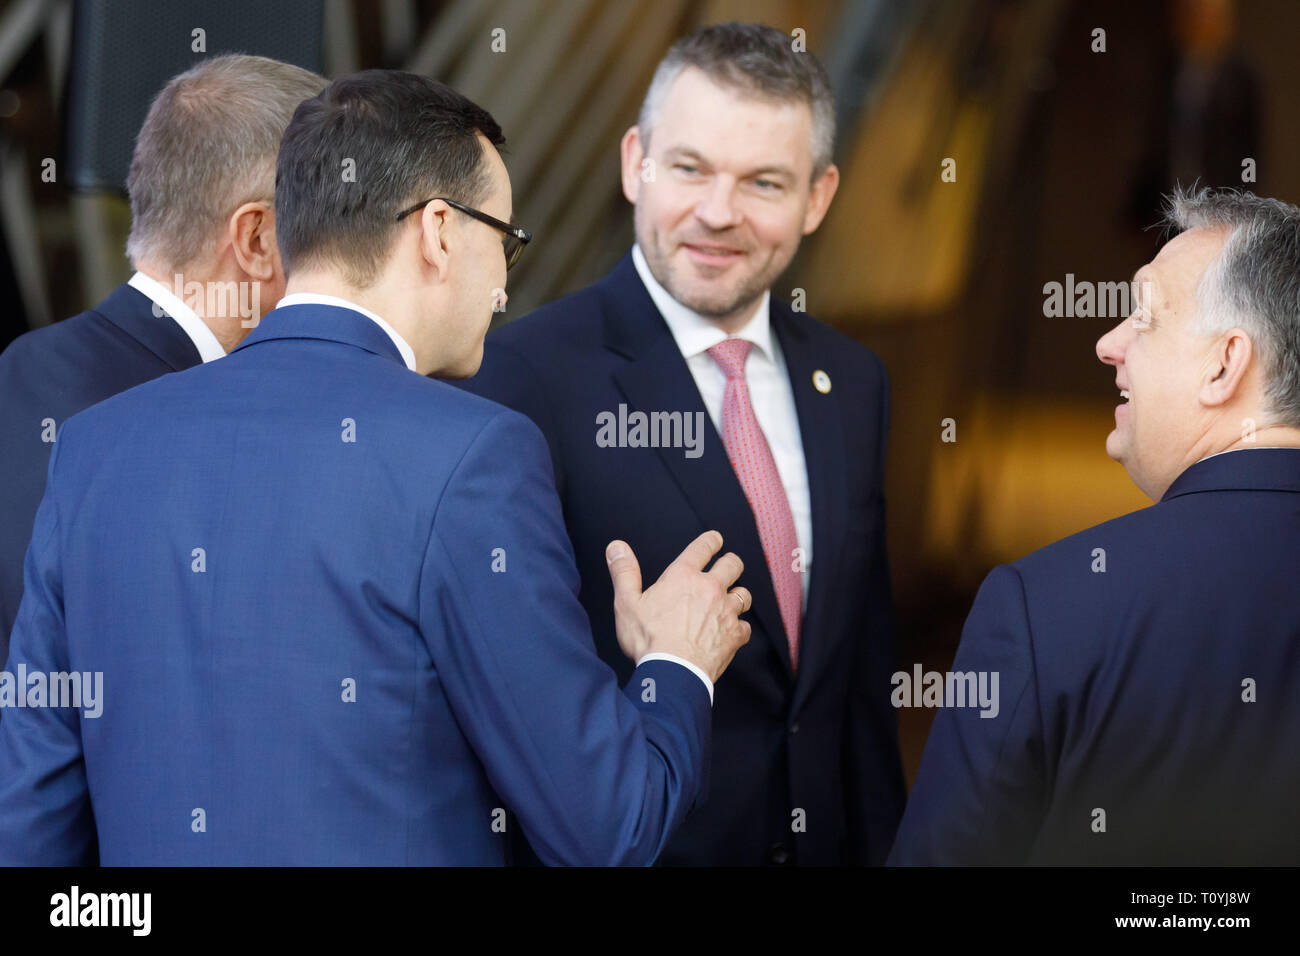 Brussels, Belgium. 22nd Mar 2019. Prime Minister of Czech Republic Andrej Babis, Prime Minsiter of Poland Mateusz Morawiecki, Prime Minister of Slovakia Peter Pellegrini and Prime Minsiter of Hungary Viktor Orban talks at the European Union leaders summit in Brussels Credit: Alex Musta/Alamy Live News - Stock Image